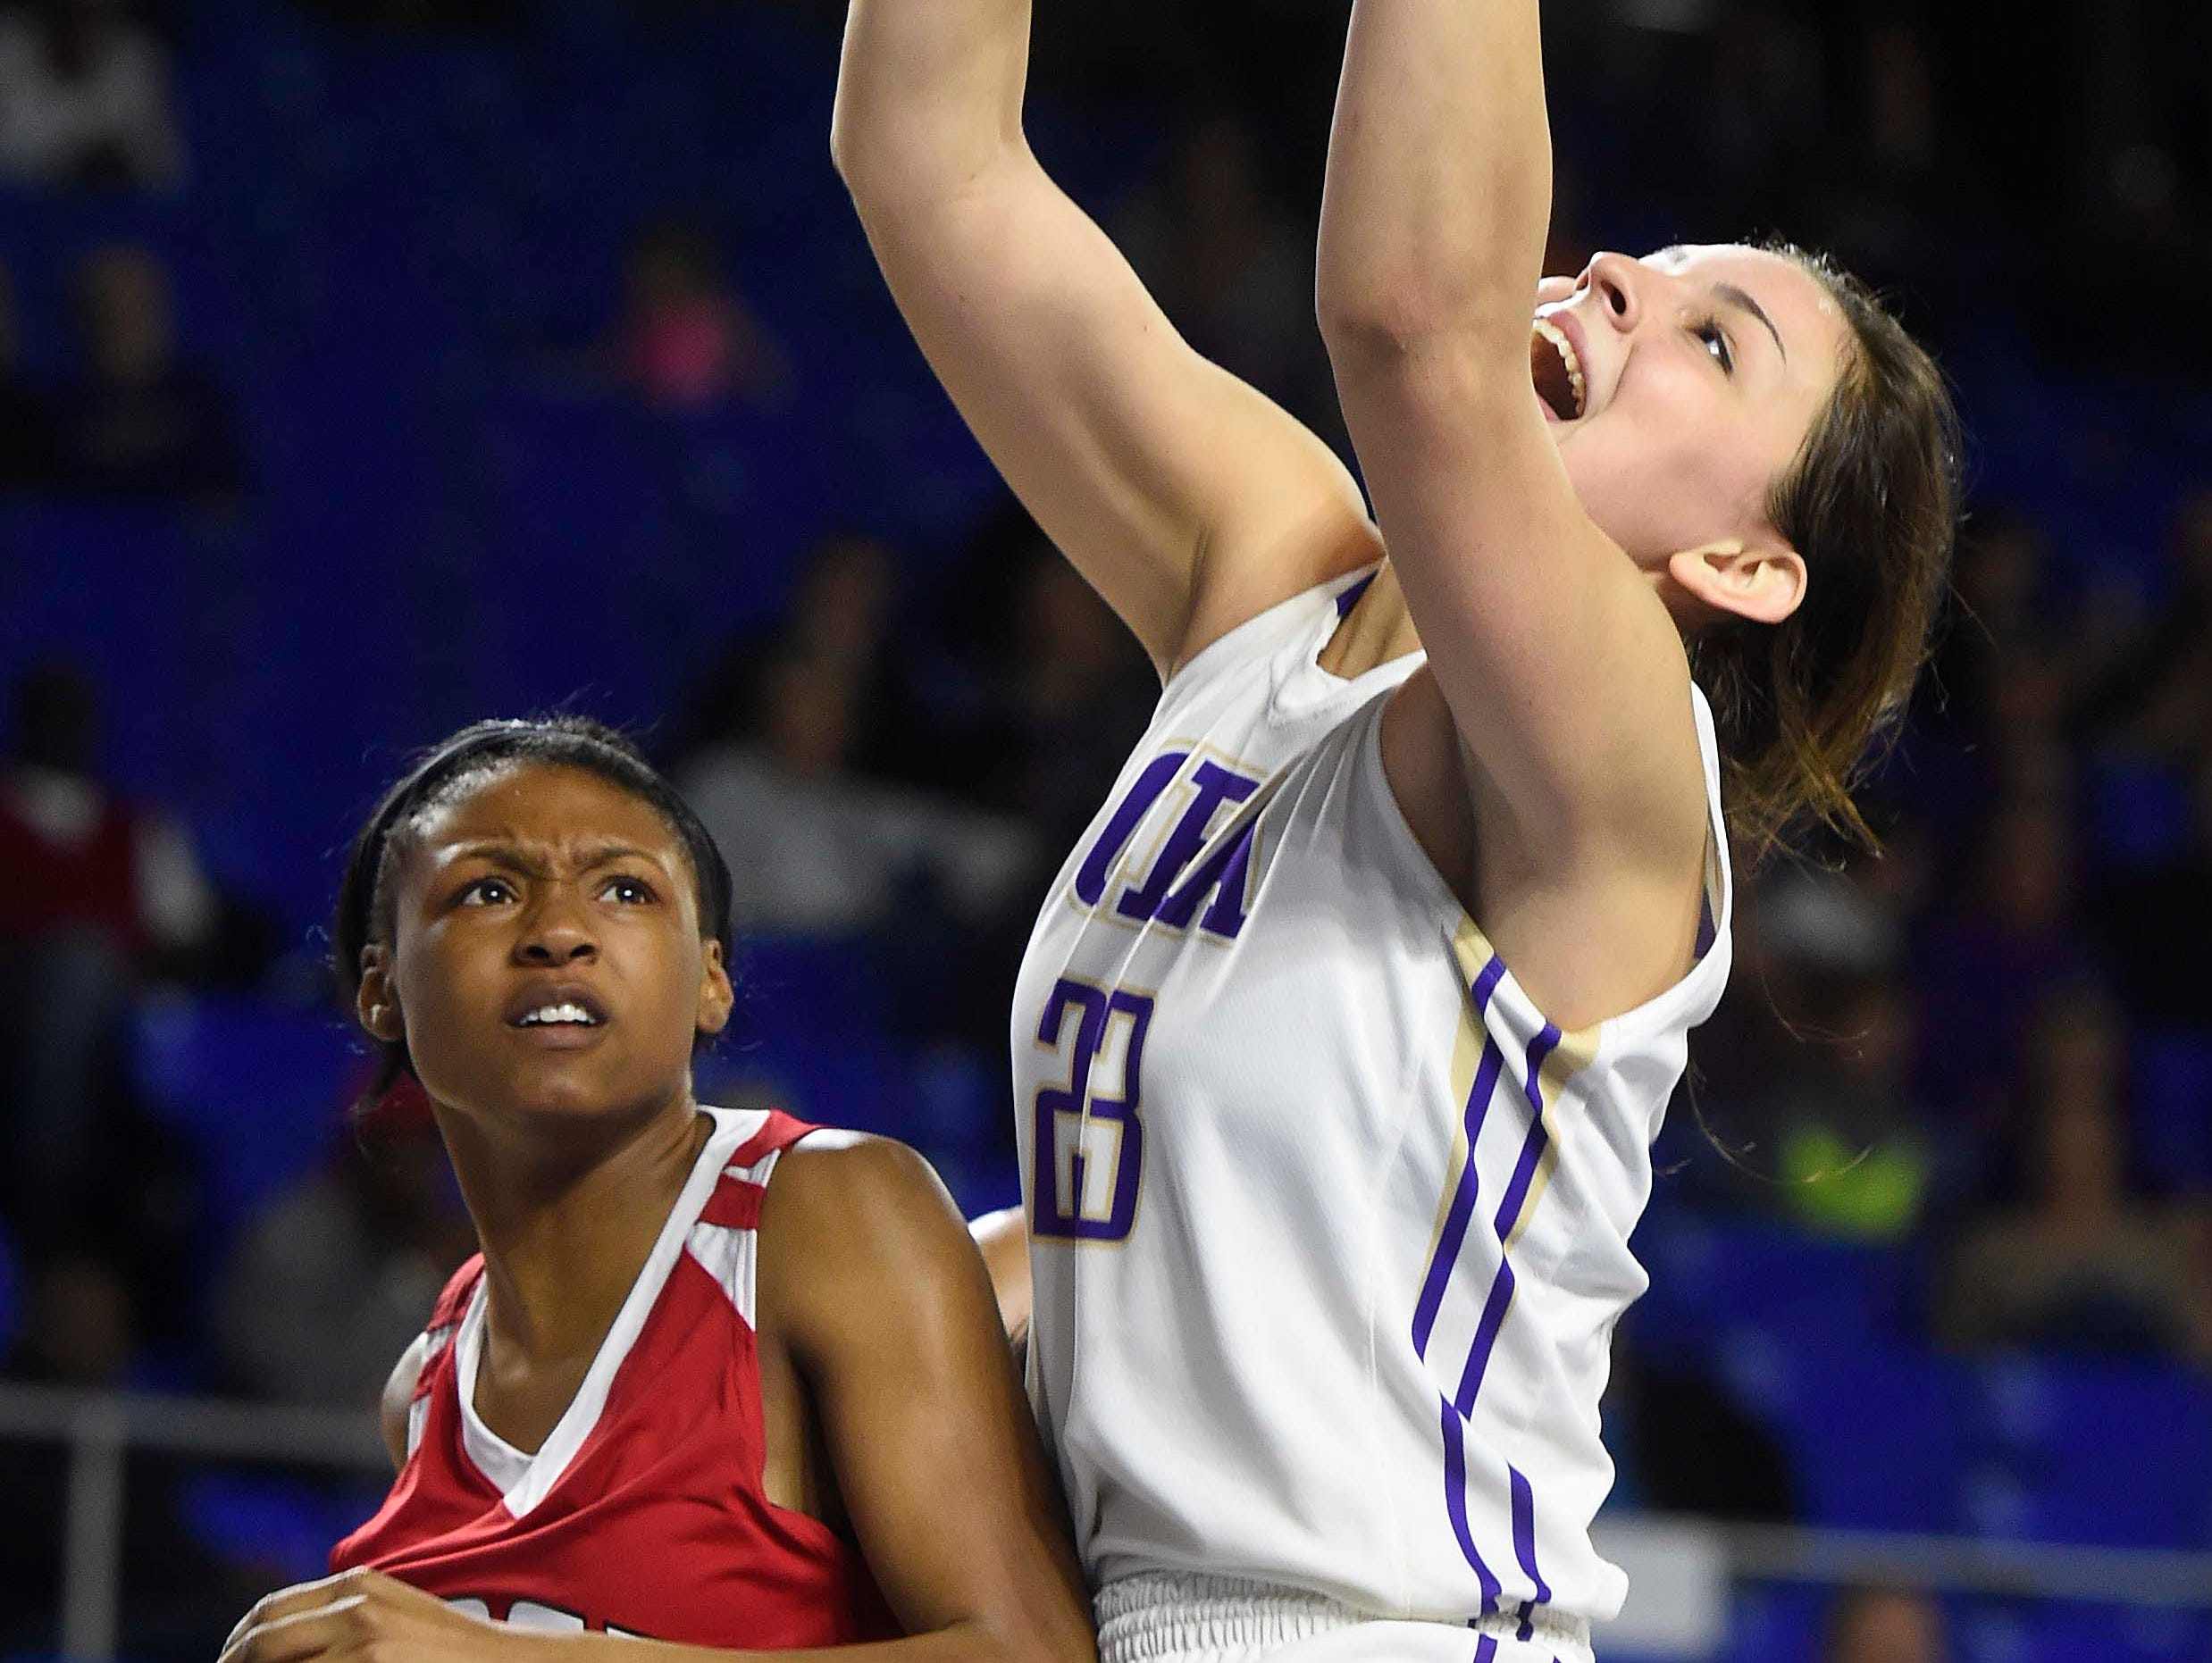 CPA's Savannah LeGate (23) grabs a rebound against East's Quentarra Mitchell (32) as East Nashville wins 47-35 in the Division I Class AA Girl's basketball tournament at the Murphy Center on MTSU's campus March 10, 2016 in Murfreesboro, Tenn.